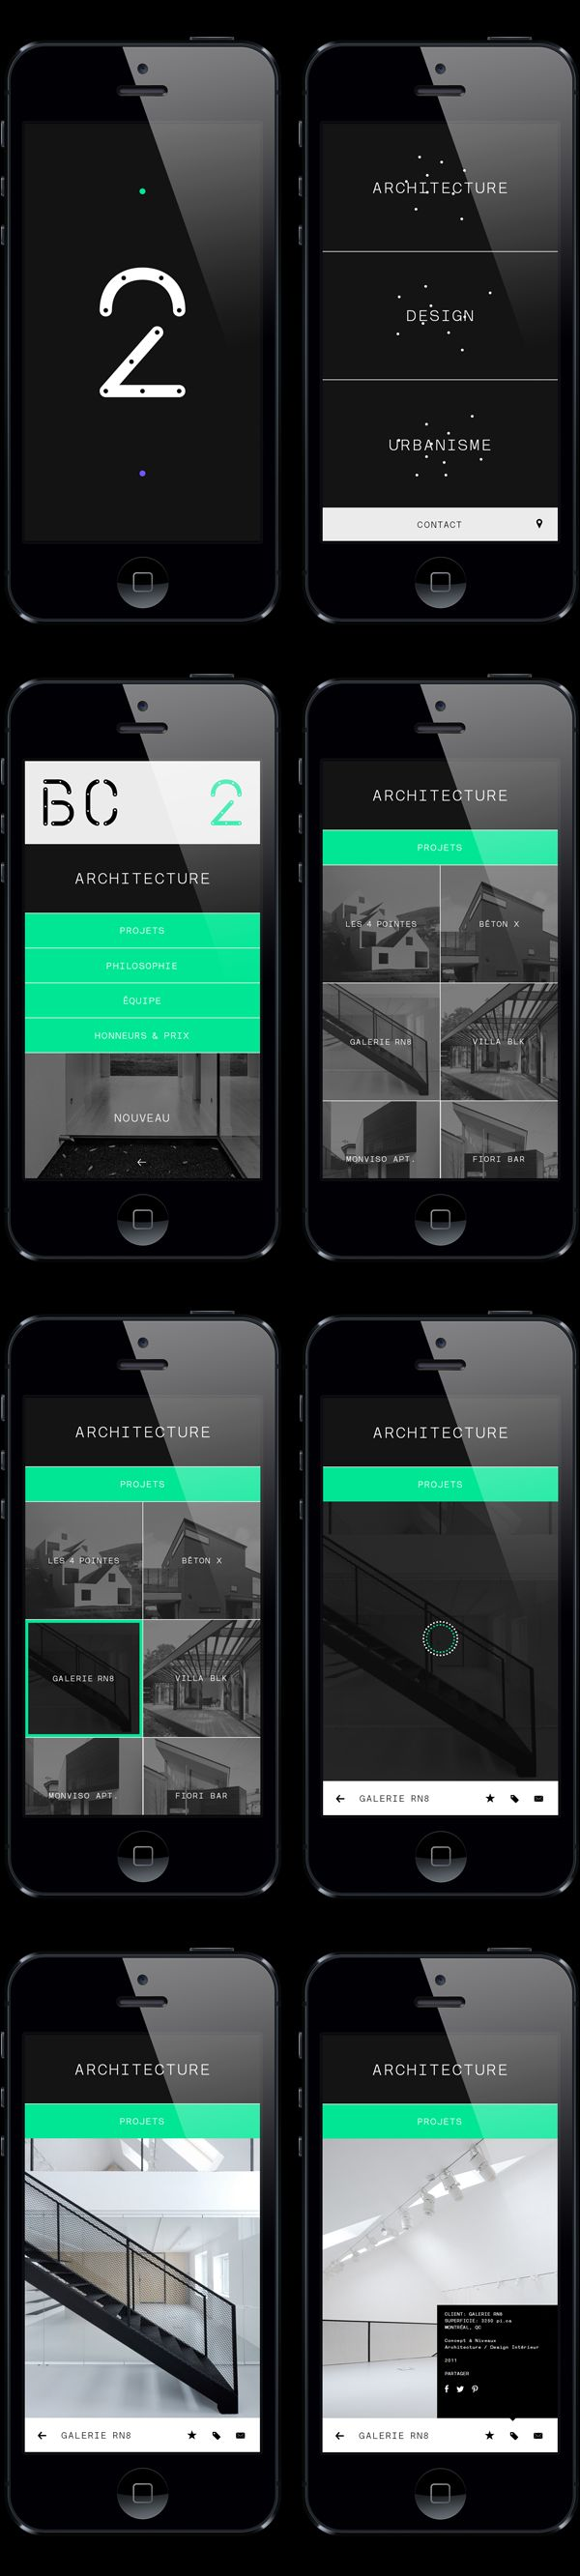 BC2 Architecture Portfolio Mobile Website Design | Clean UI Design | #design #web #mobile #ui #ux #inspiration